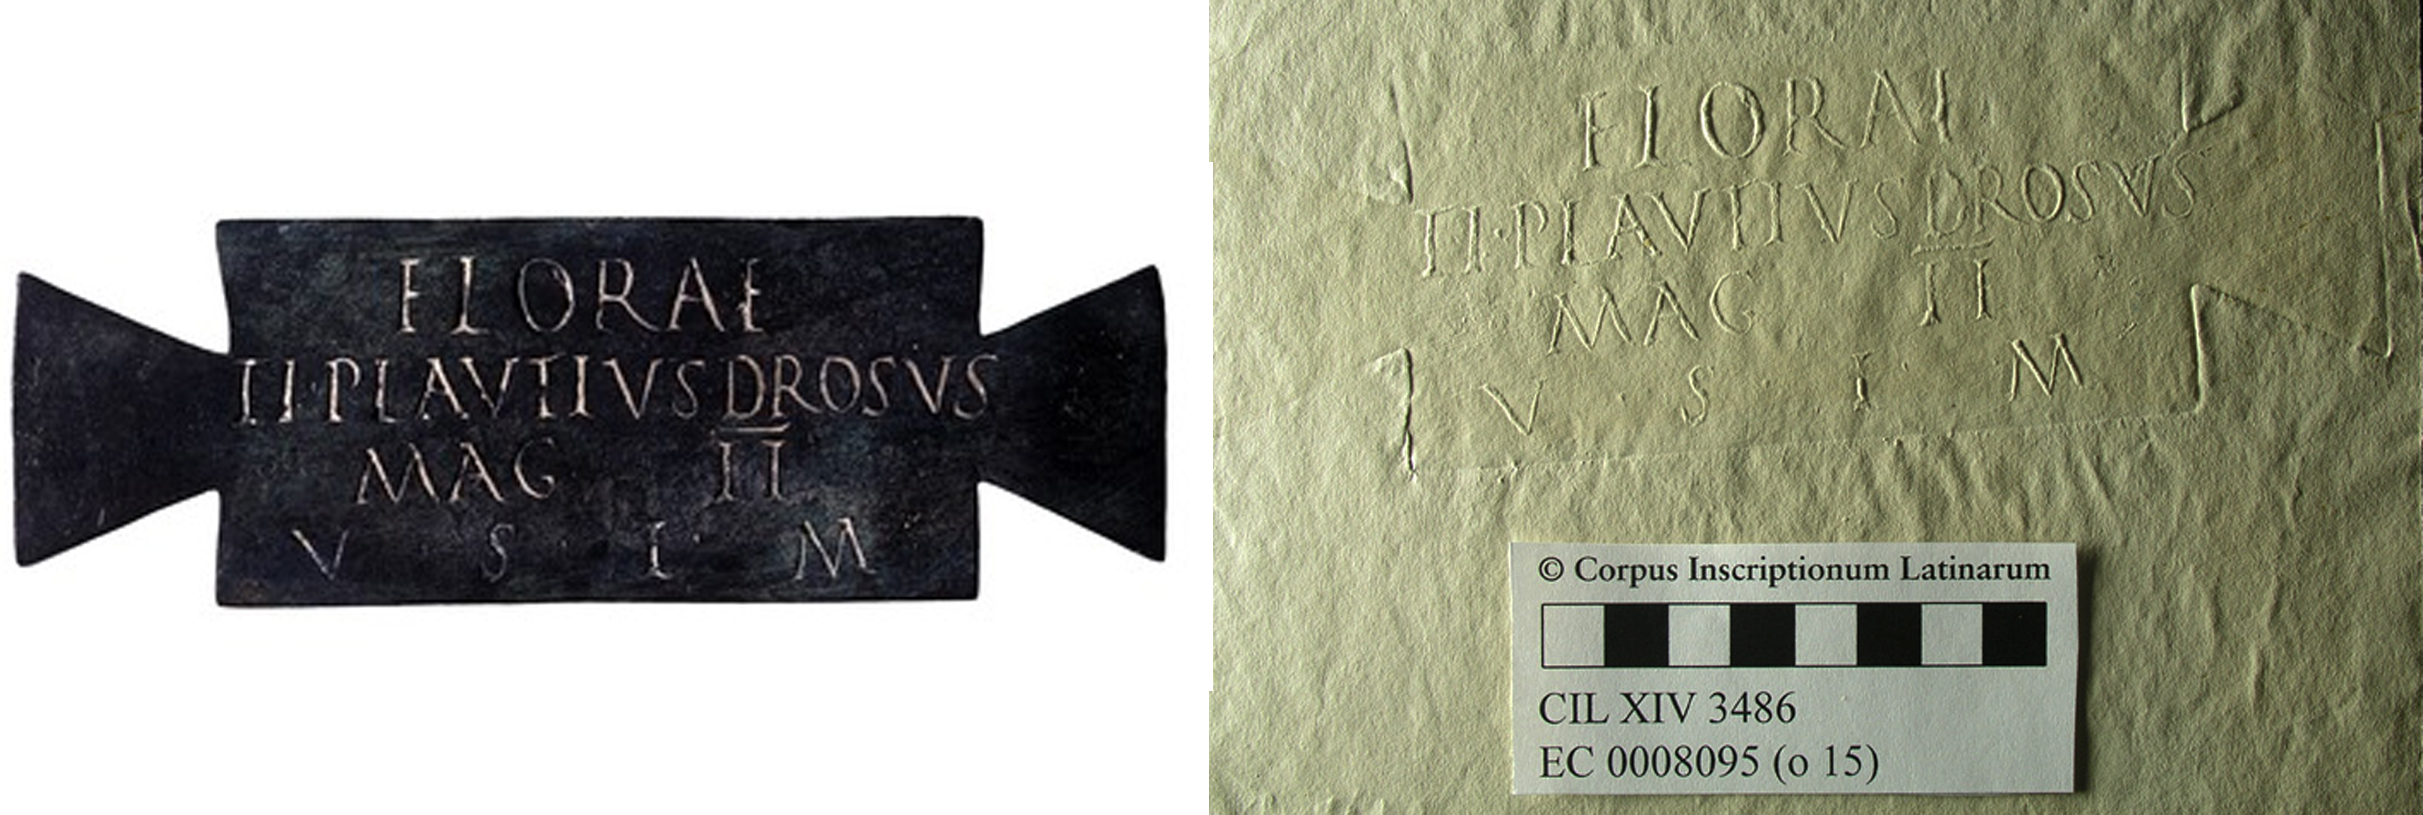 The Terme version of the Flora plaque (inv. 65029), and a 'squeeze' (paper impression) of the Naples version (inv. 2570)